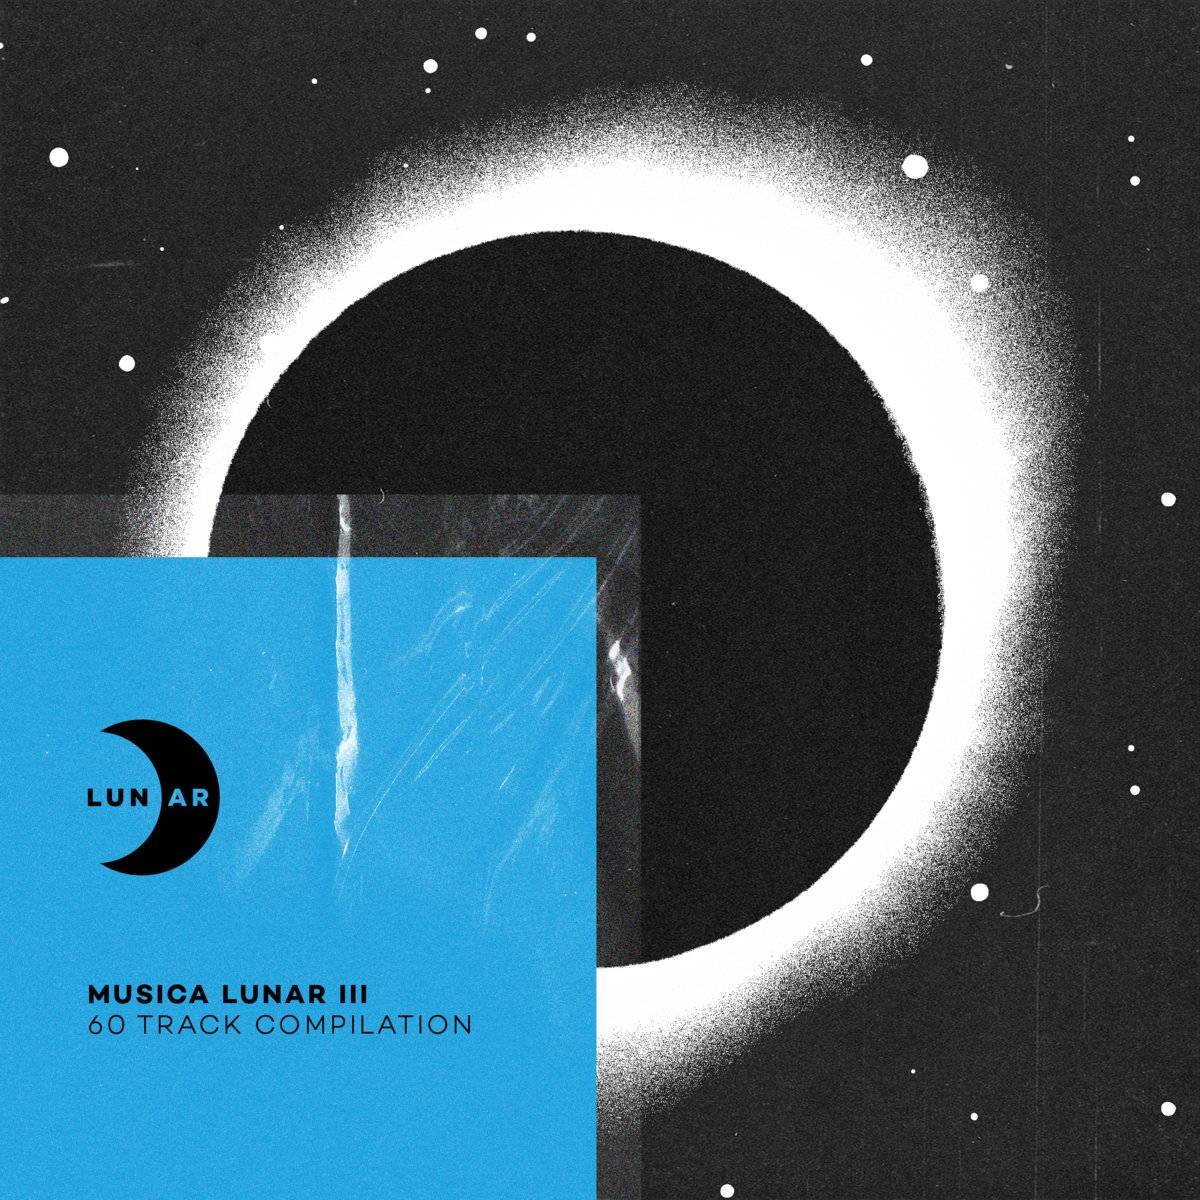 Musica Lunar released a new 60-track compilation